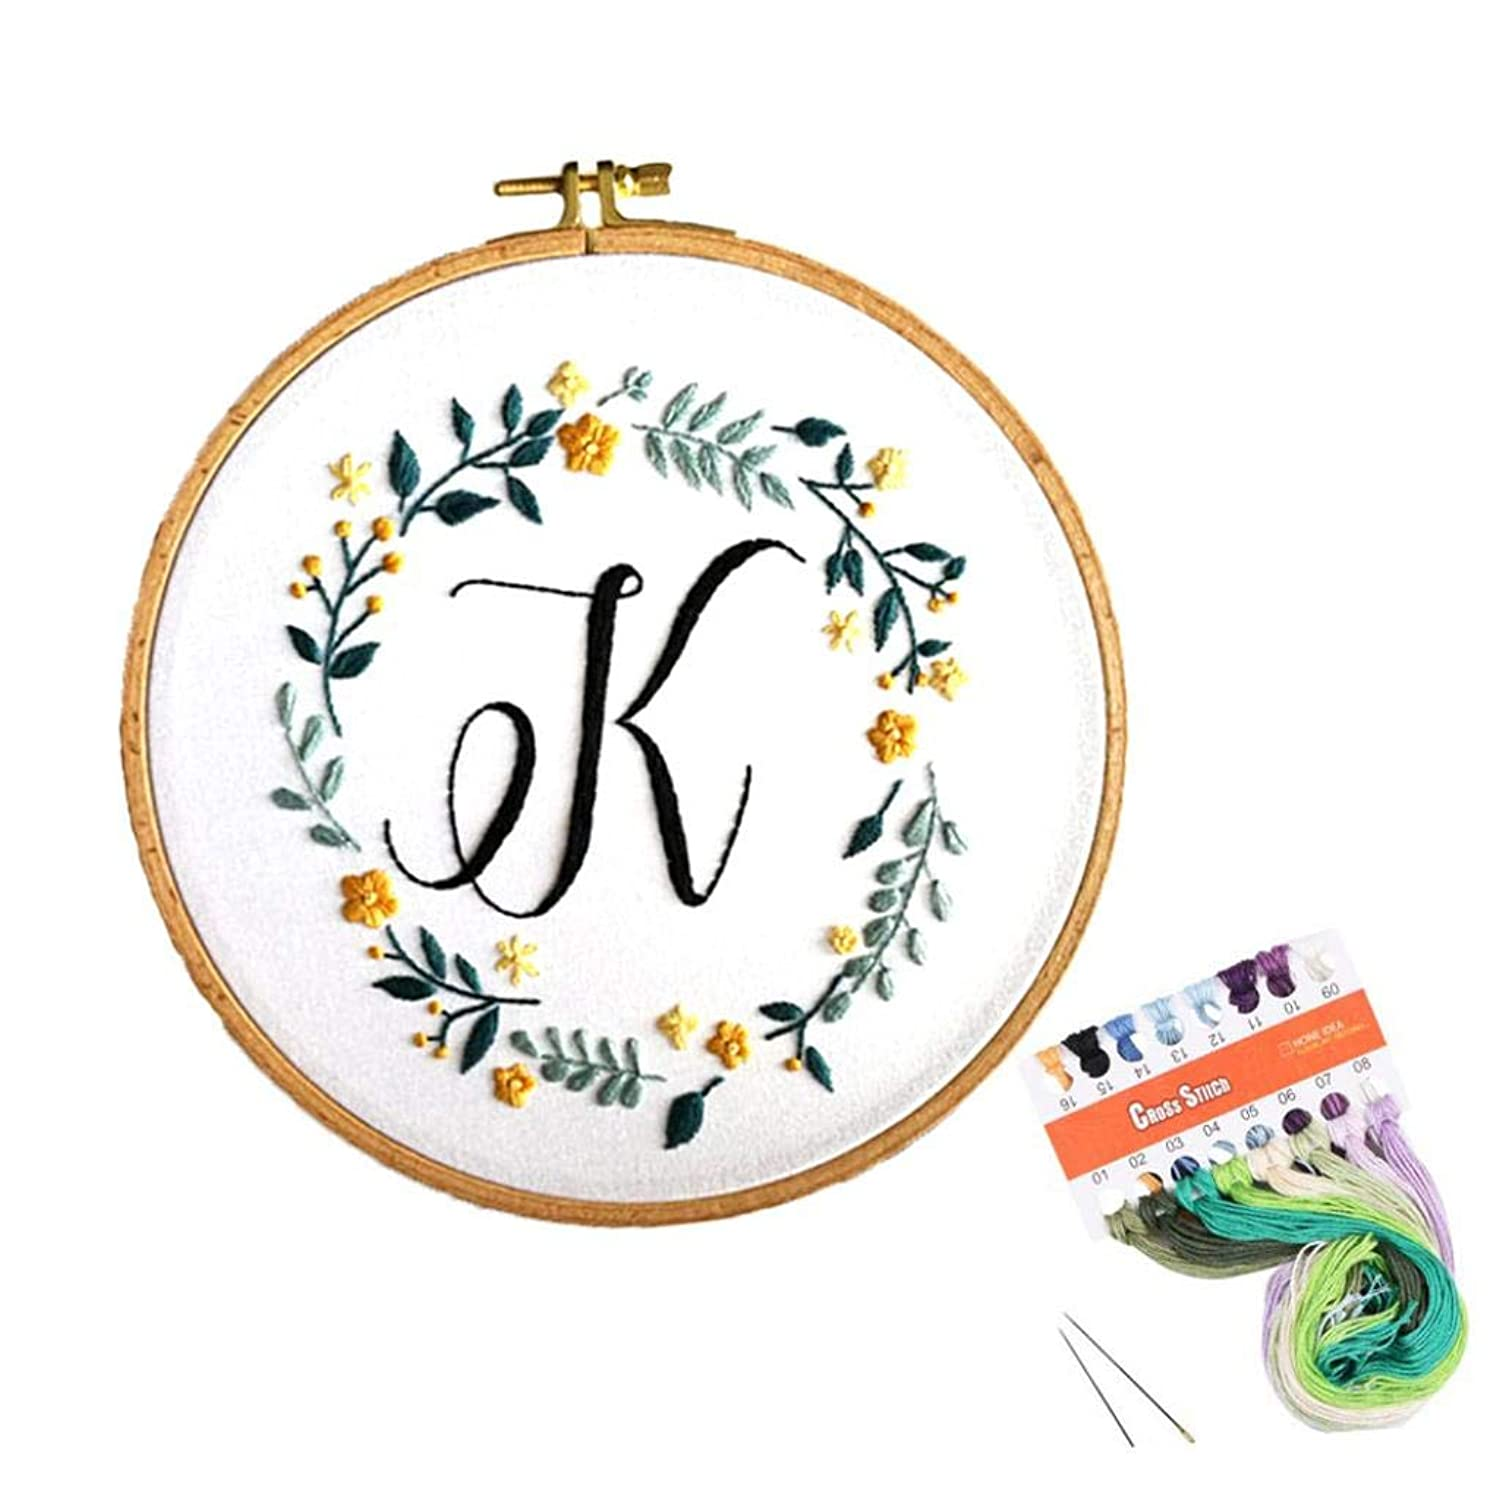 Louise Maelys Embroidery Starter Kit Full Range of Stamped Cross Stitch Kits for Beginner Including Embroidery Cloth with Pattern, Embroidery Hoop, Color Threads, Tools Kit